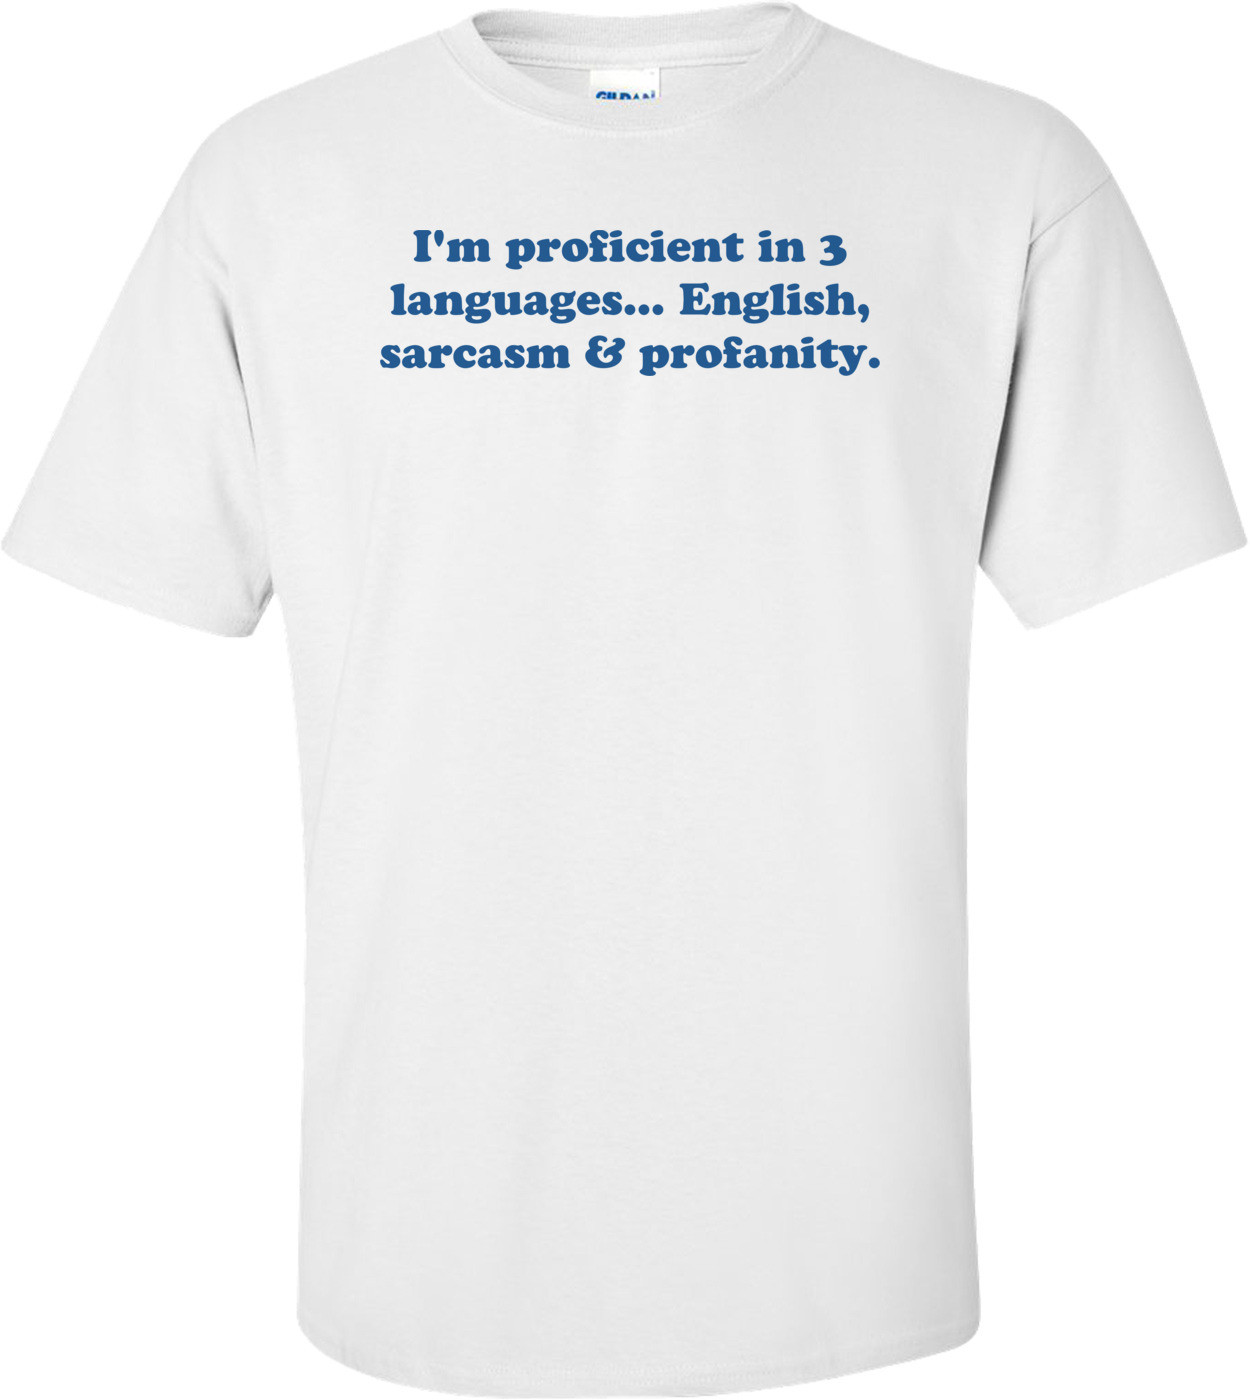 I'm proficient in 3 languages... English, sarcasm & profanity. Shirt